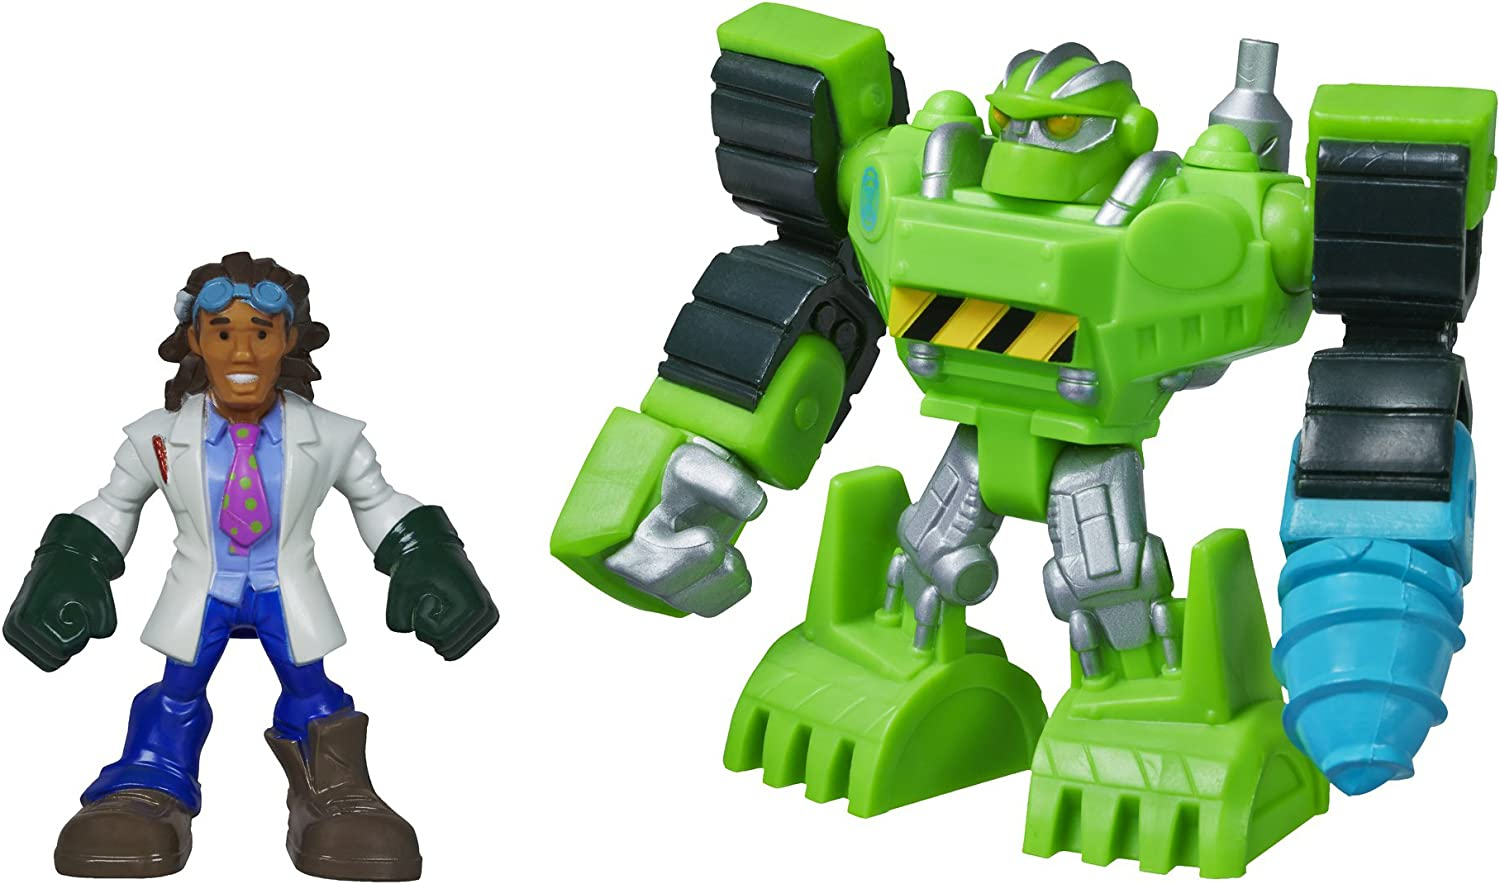 Playskool Heroes Transformers Rescue Bots Boulder the ConstructionBot and Doc Greene Figure Pack